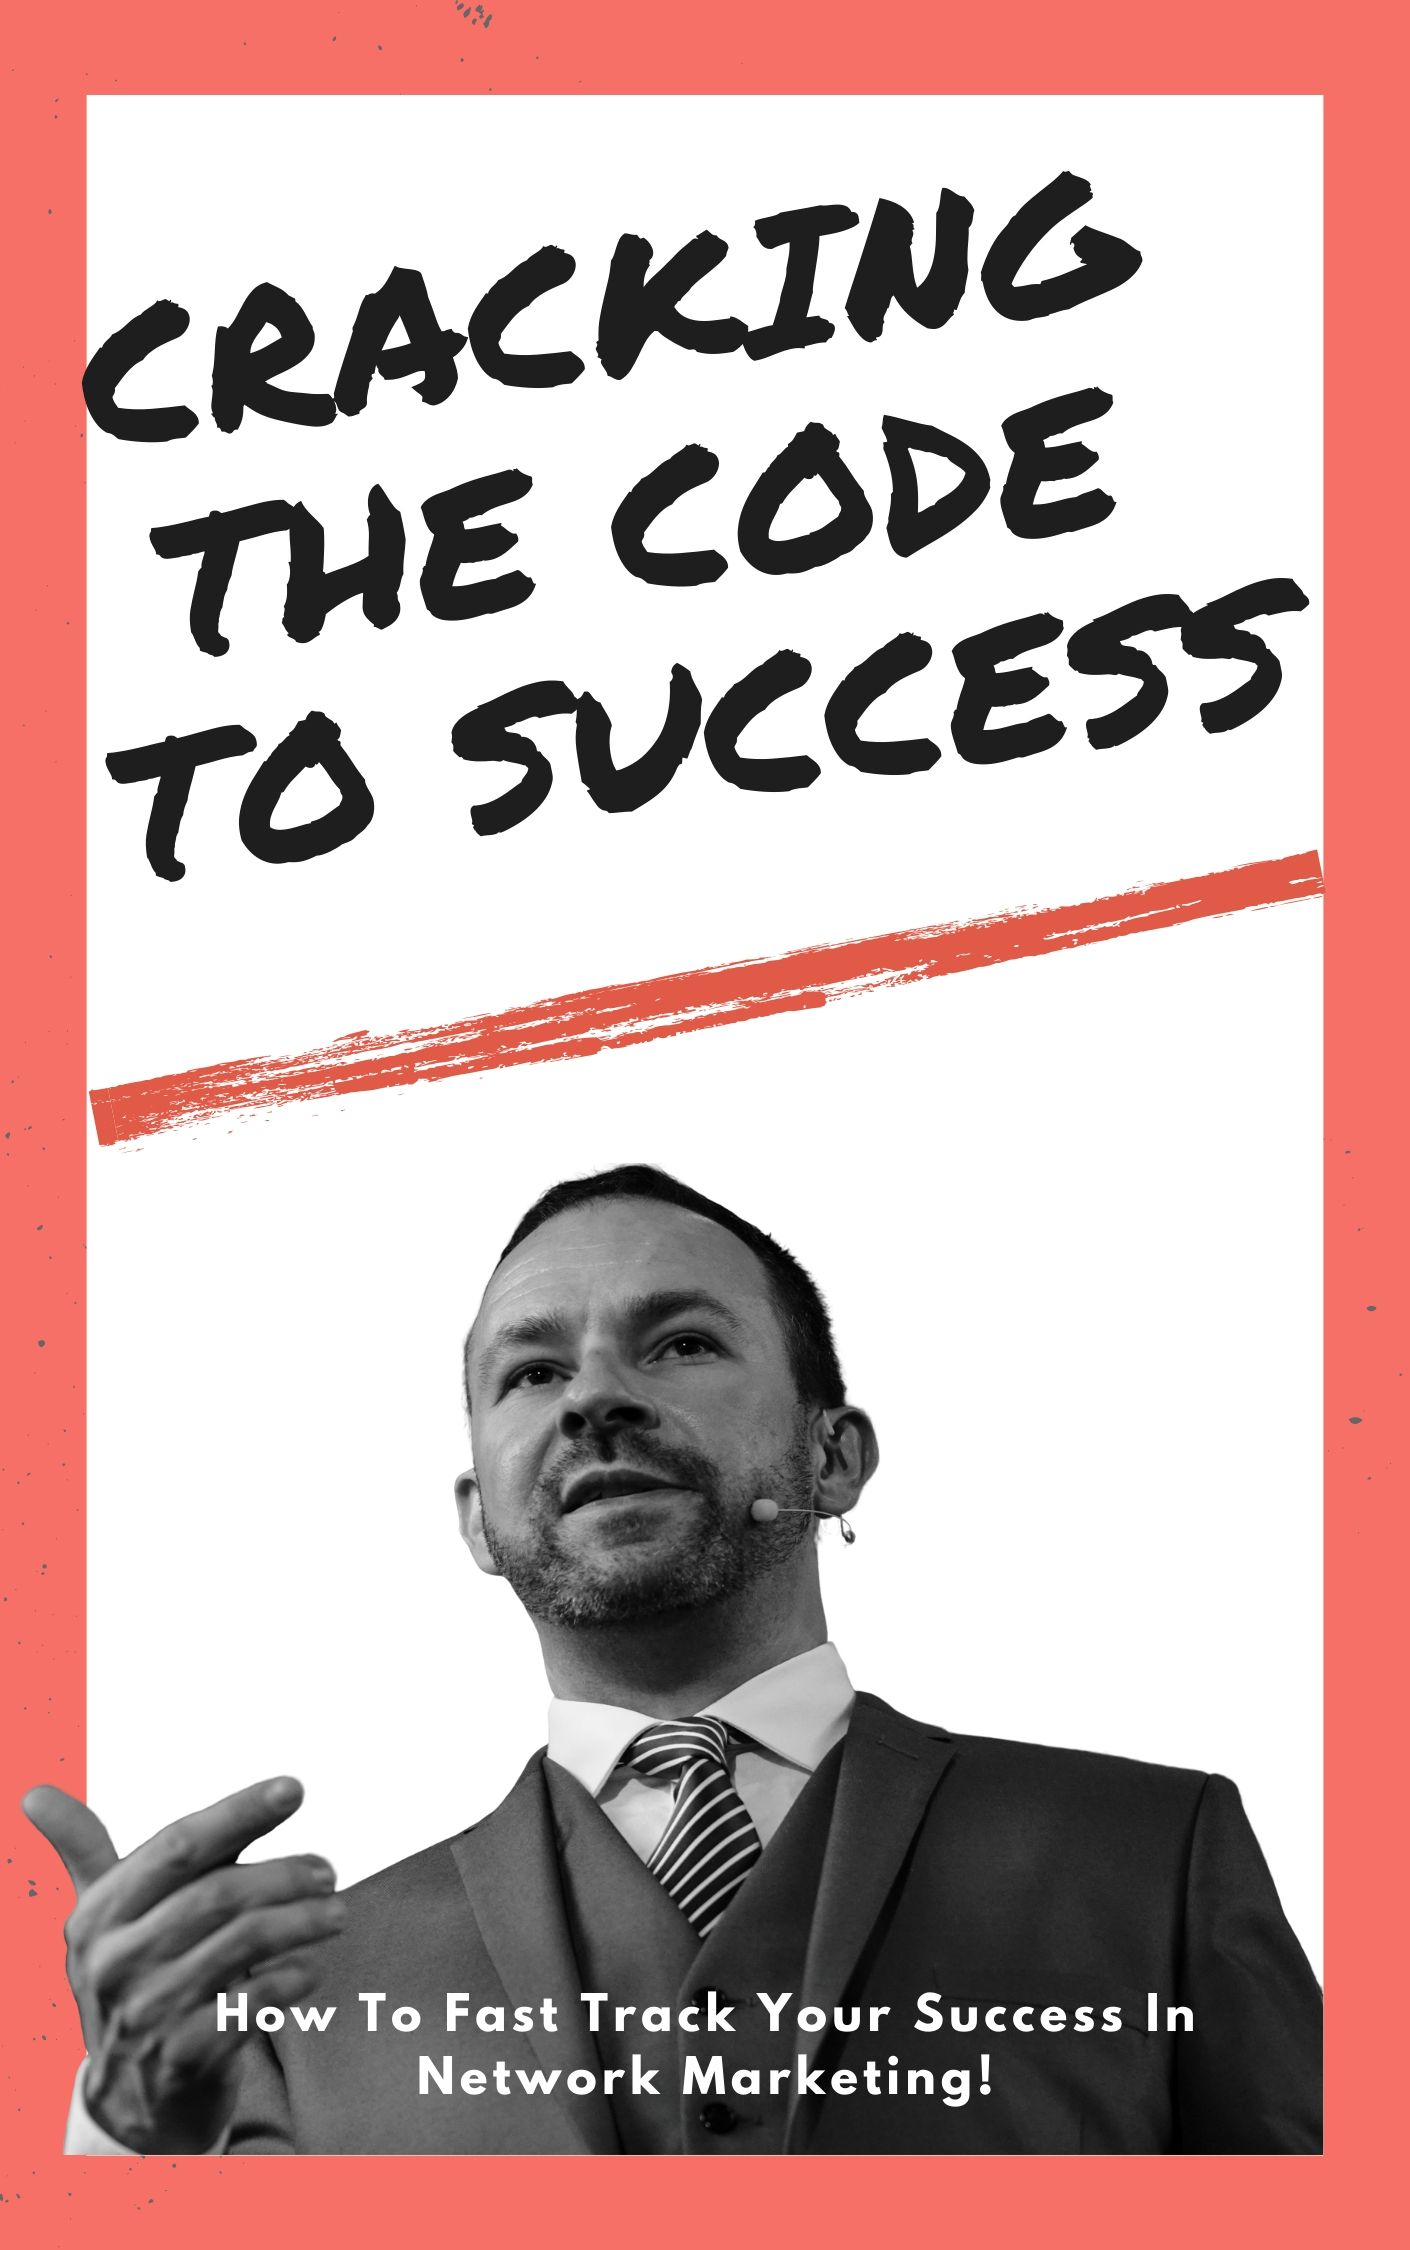 Cracking the Code to Success Chris Rowell